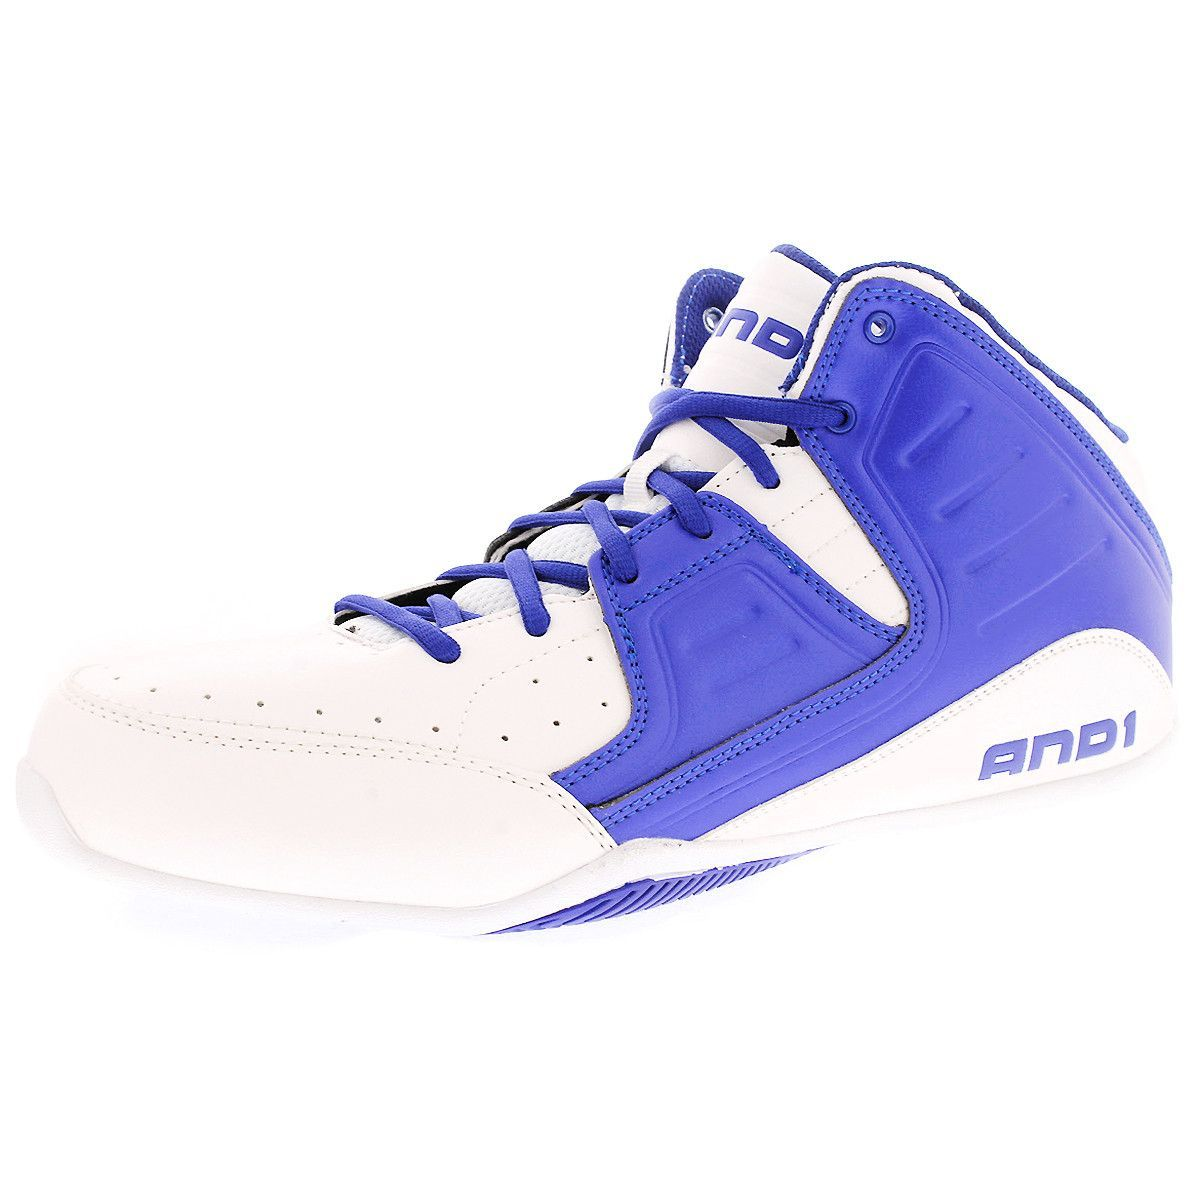 1171e90d150 AND1 - Men s Rocket 4.0 Mid Sneakers - White Surf